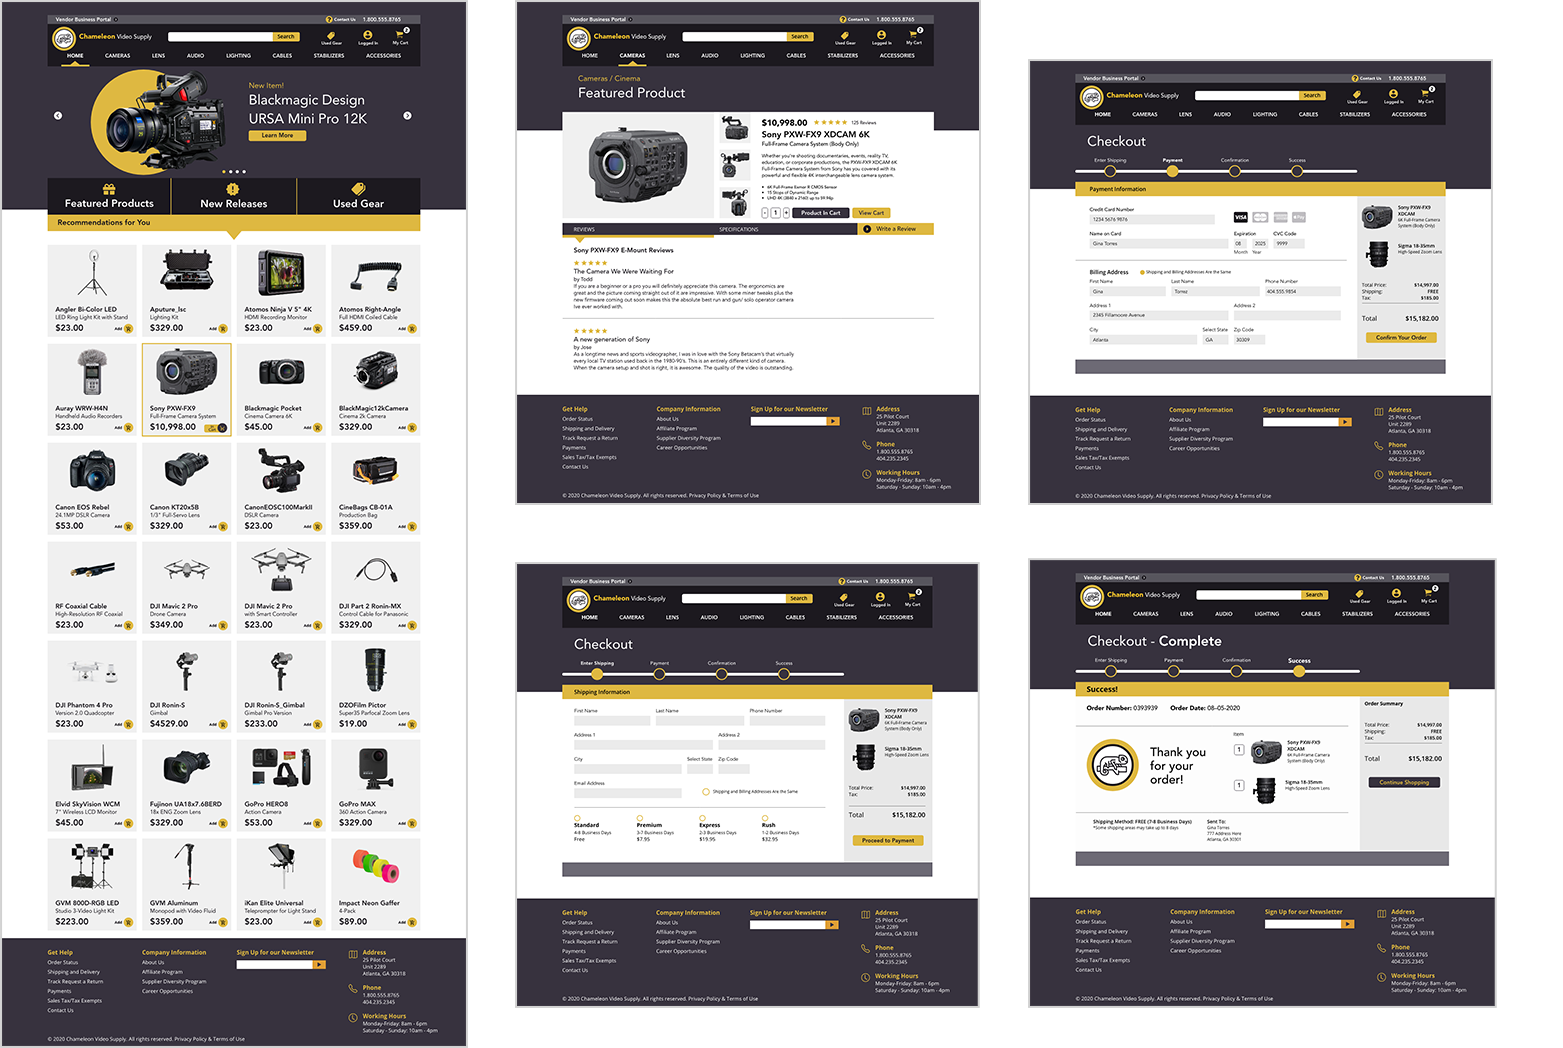 High fidelity wireframes of Homepage, featured product, and checkout of website